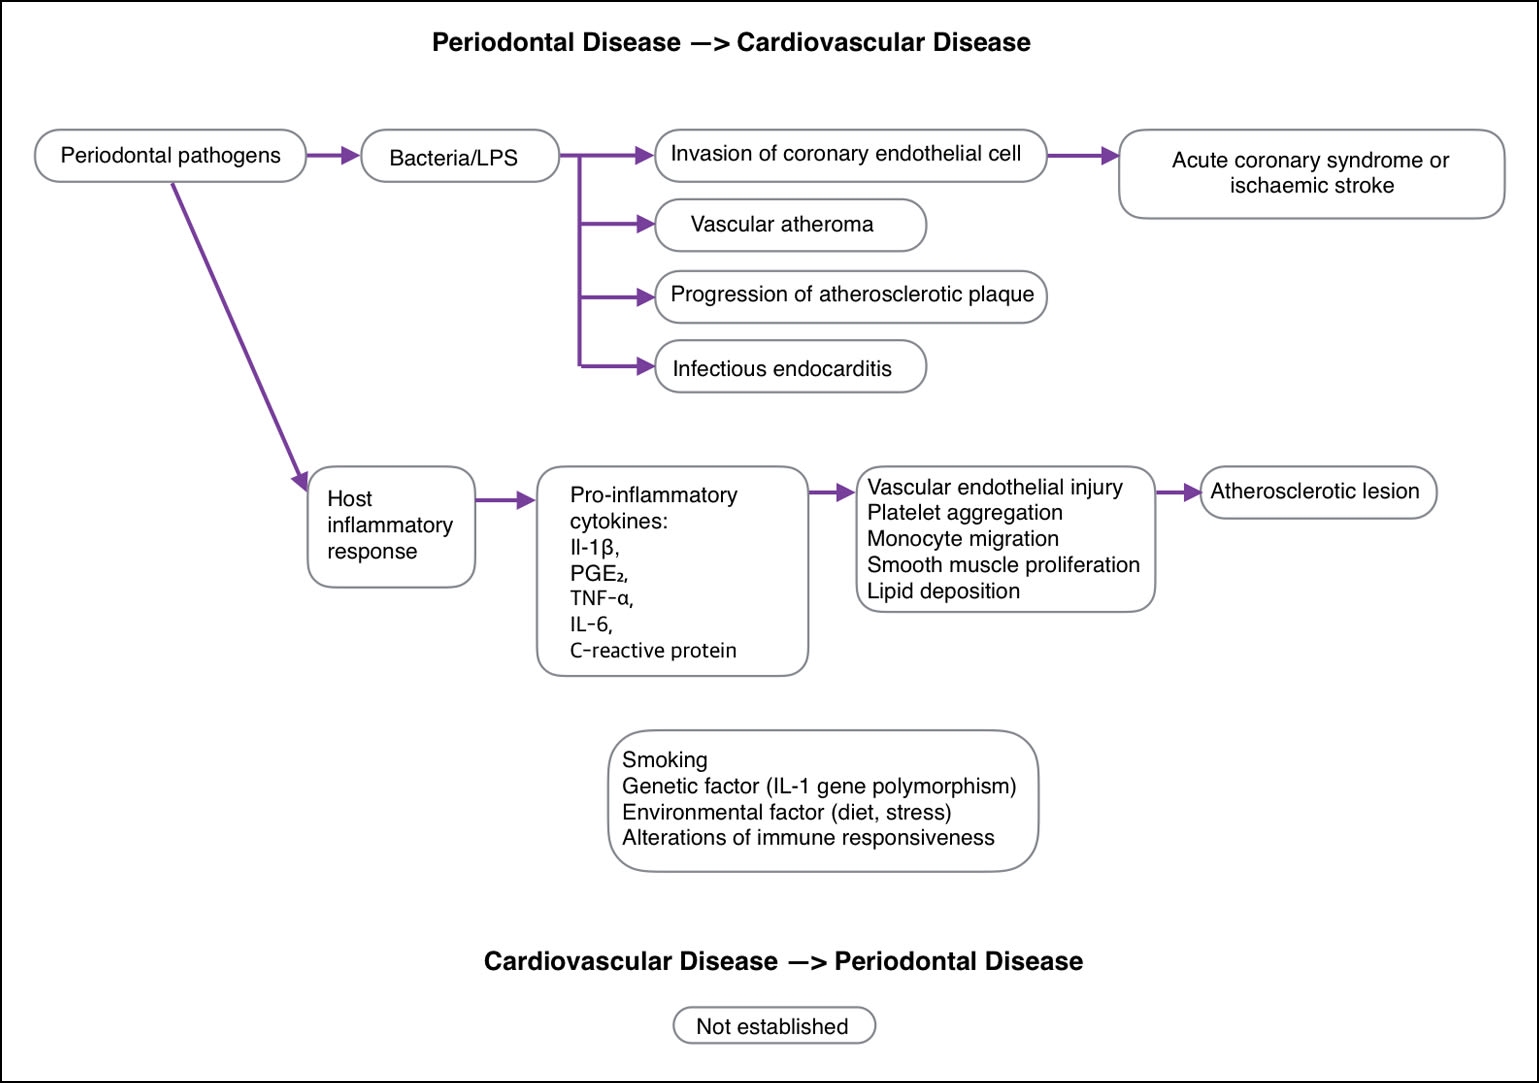 Diagram of periodontal and cardiovascular disease interaction.